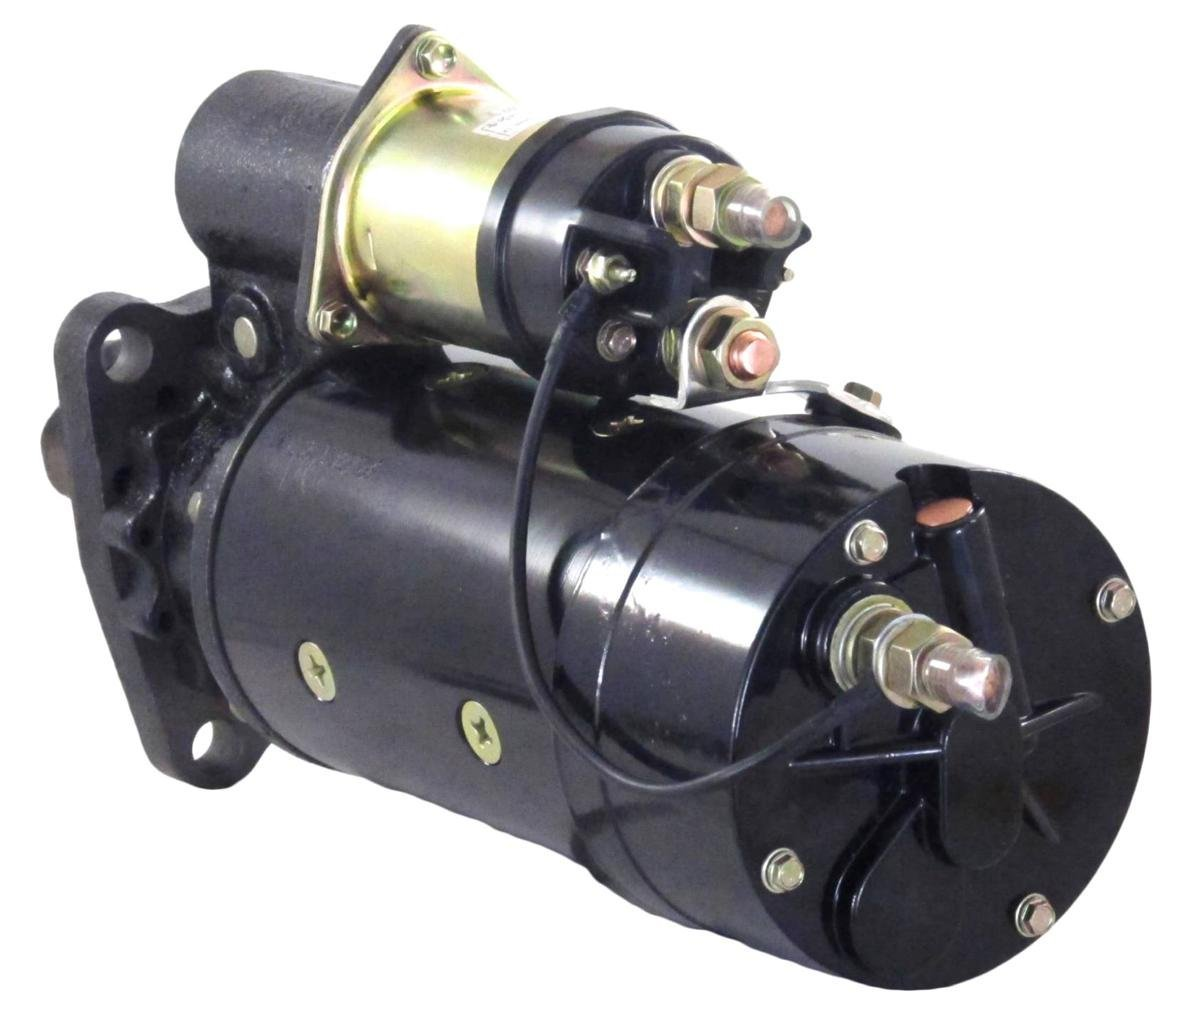 hight resolution of new 12v 12t cw starter motor fits 85 95 fits caterpillar marine engines 3208 cat